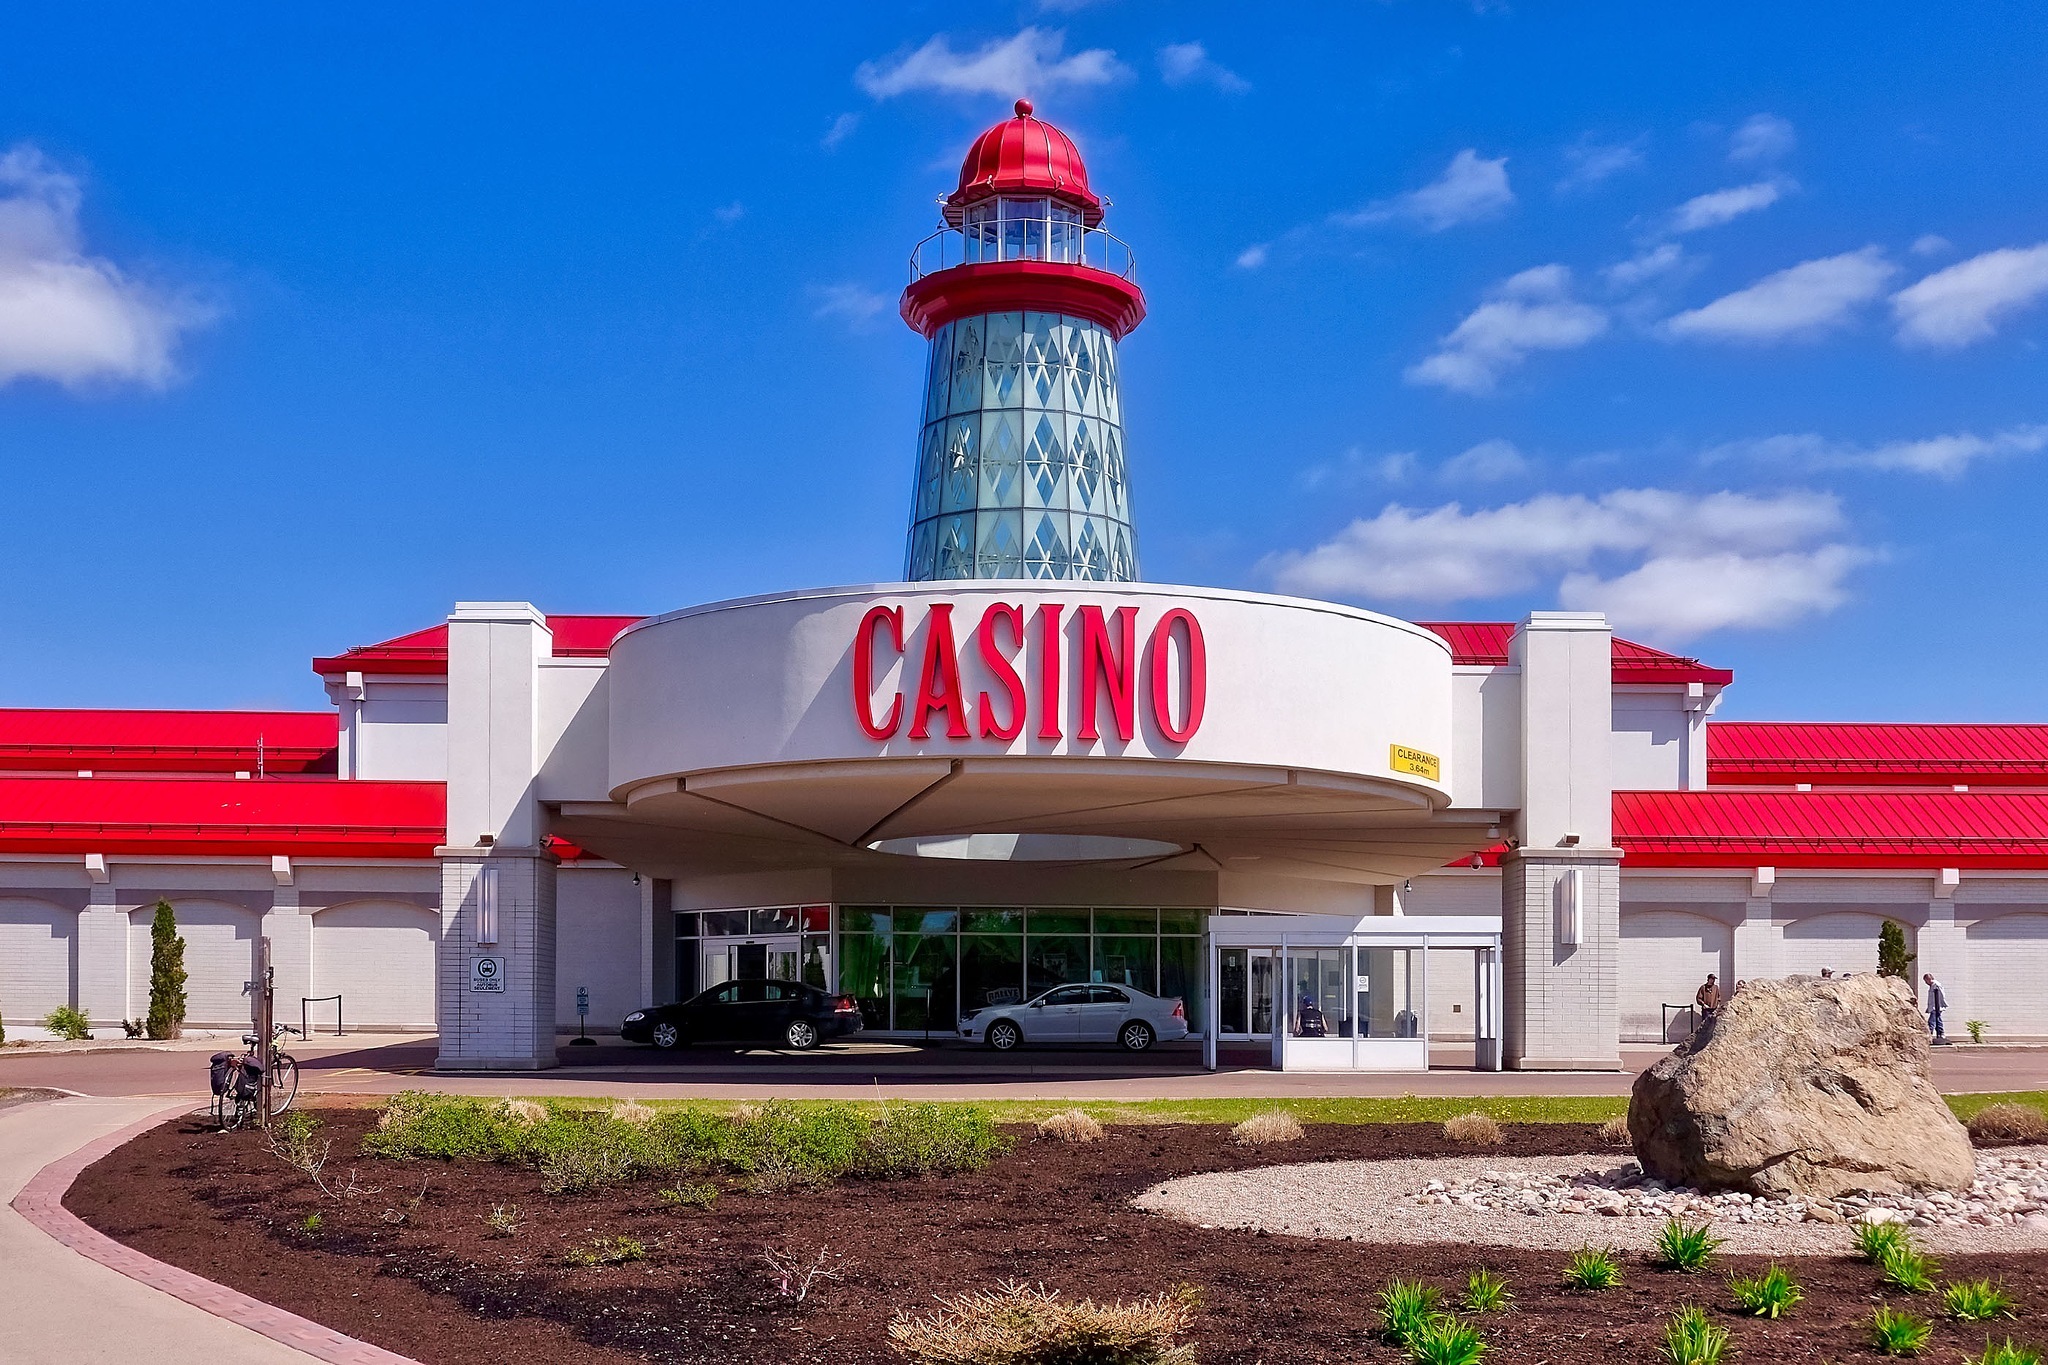 The casino of Moncton in Canada. by Erwin Widmer